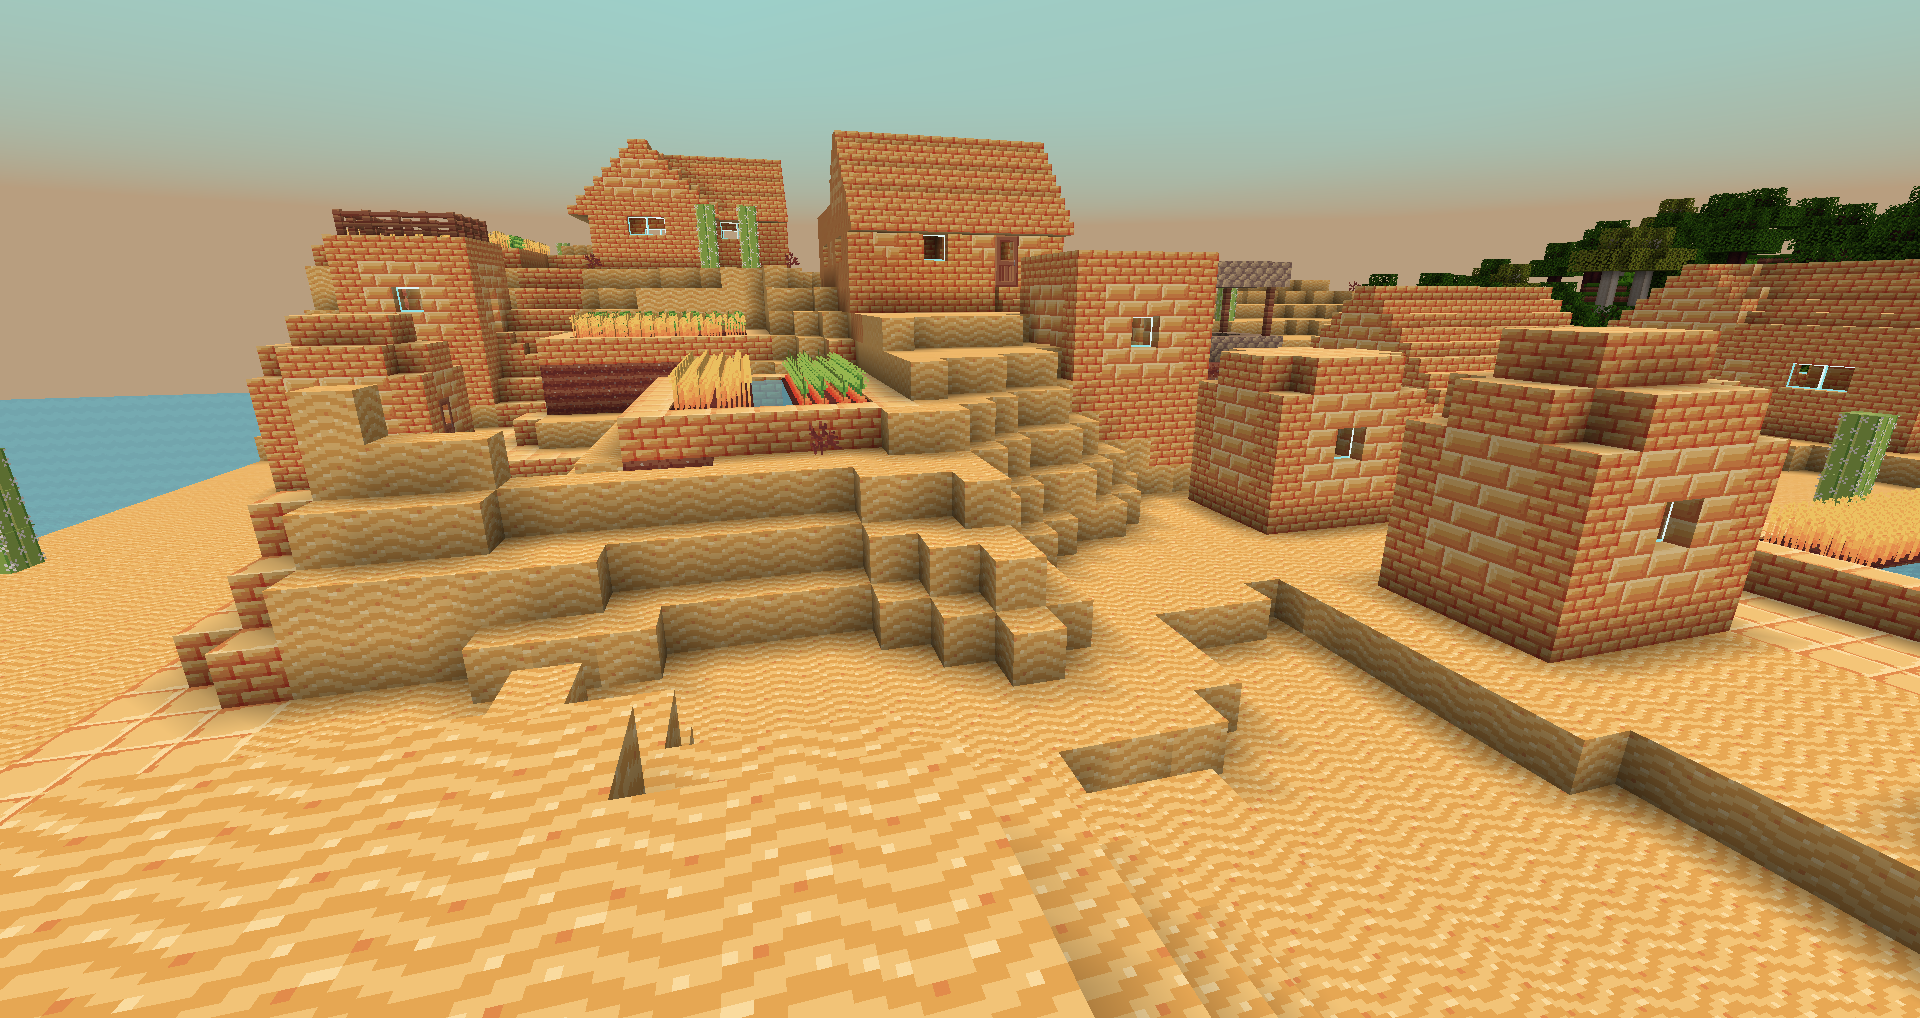 12705701484 085163cd75 o [1.9.4/1.8.9] [16x] Flourish Texture Pack Download